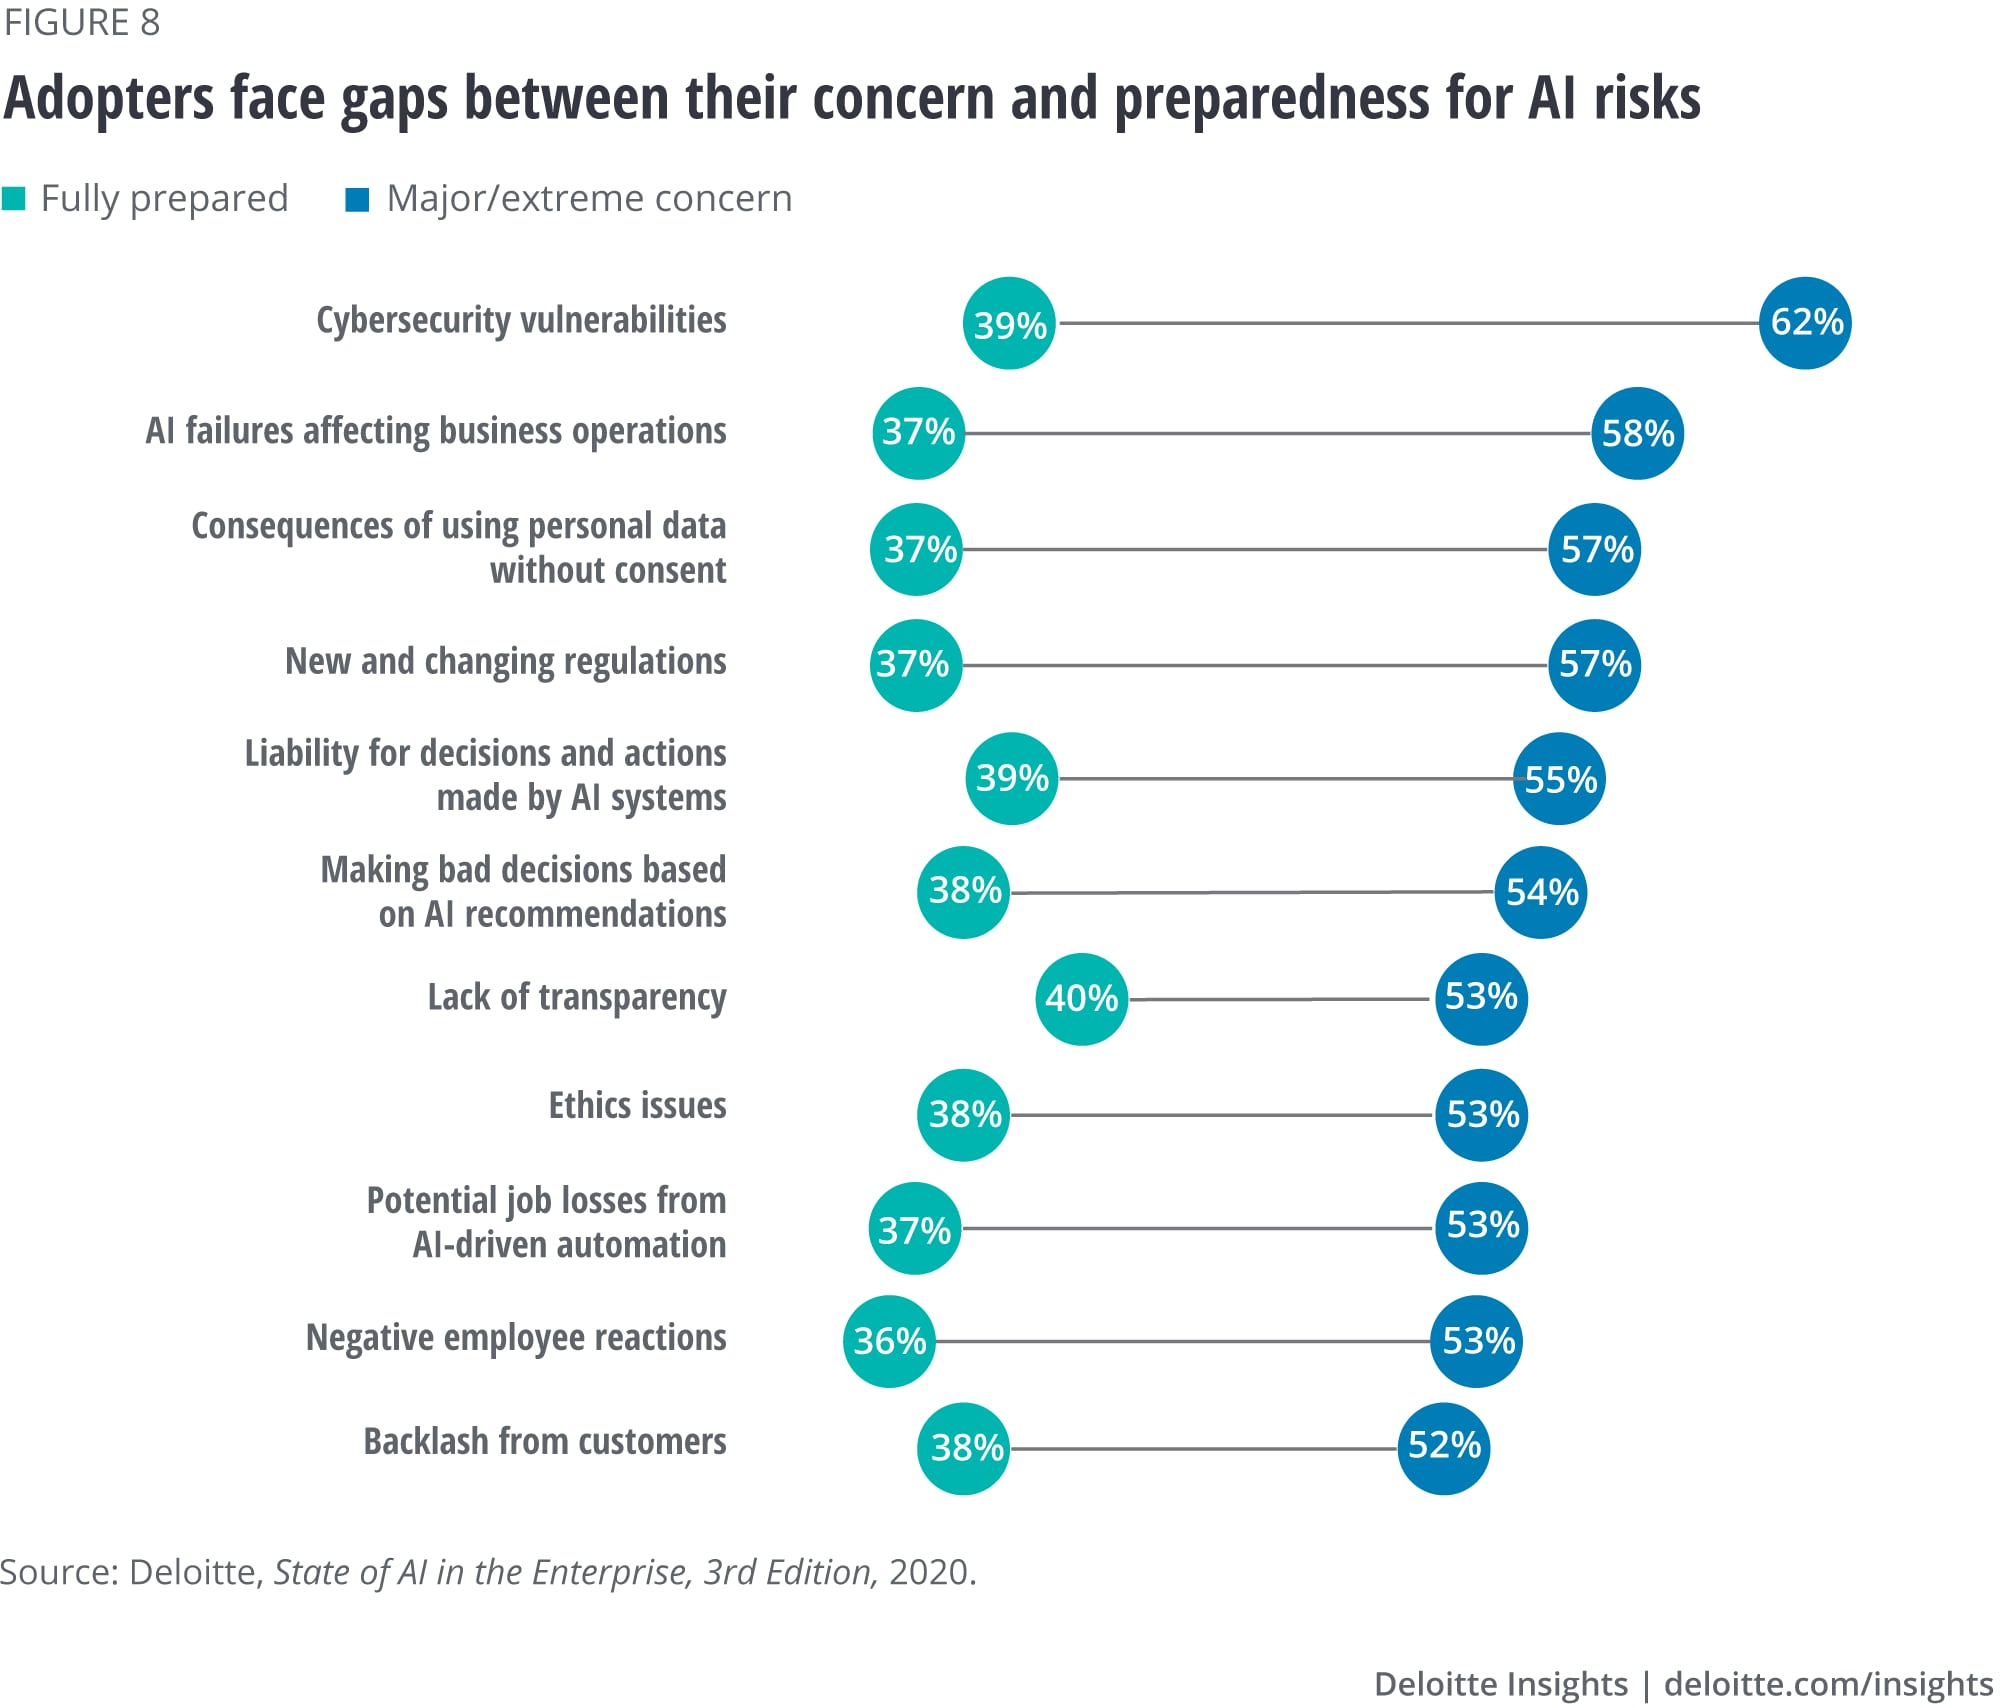 Adopters face gaps between their concern and preparedness for AI risks